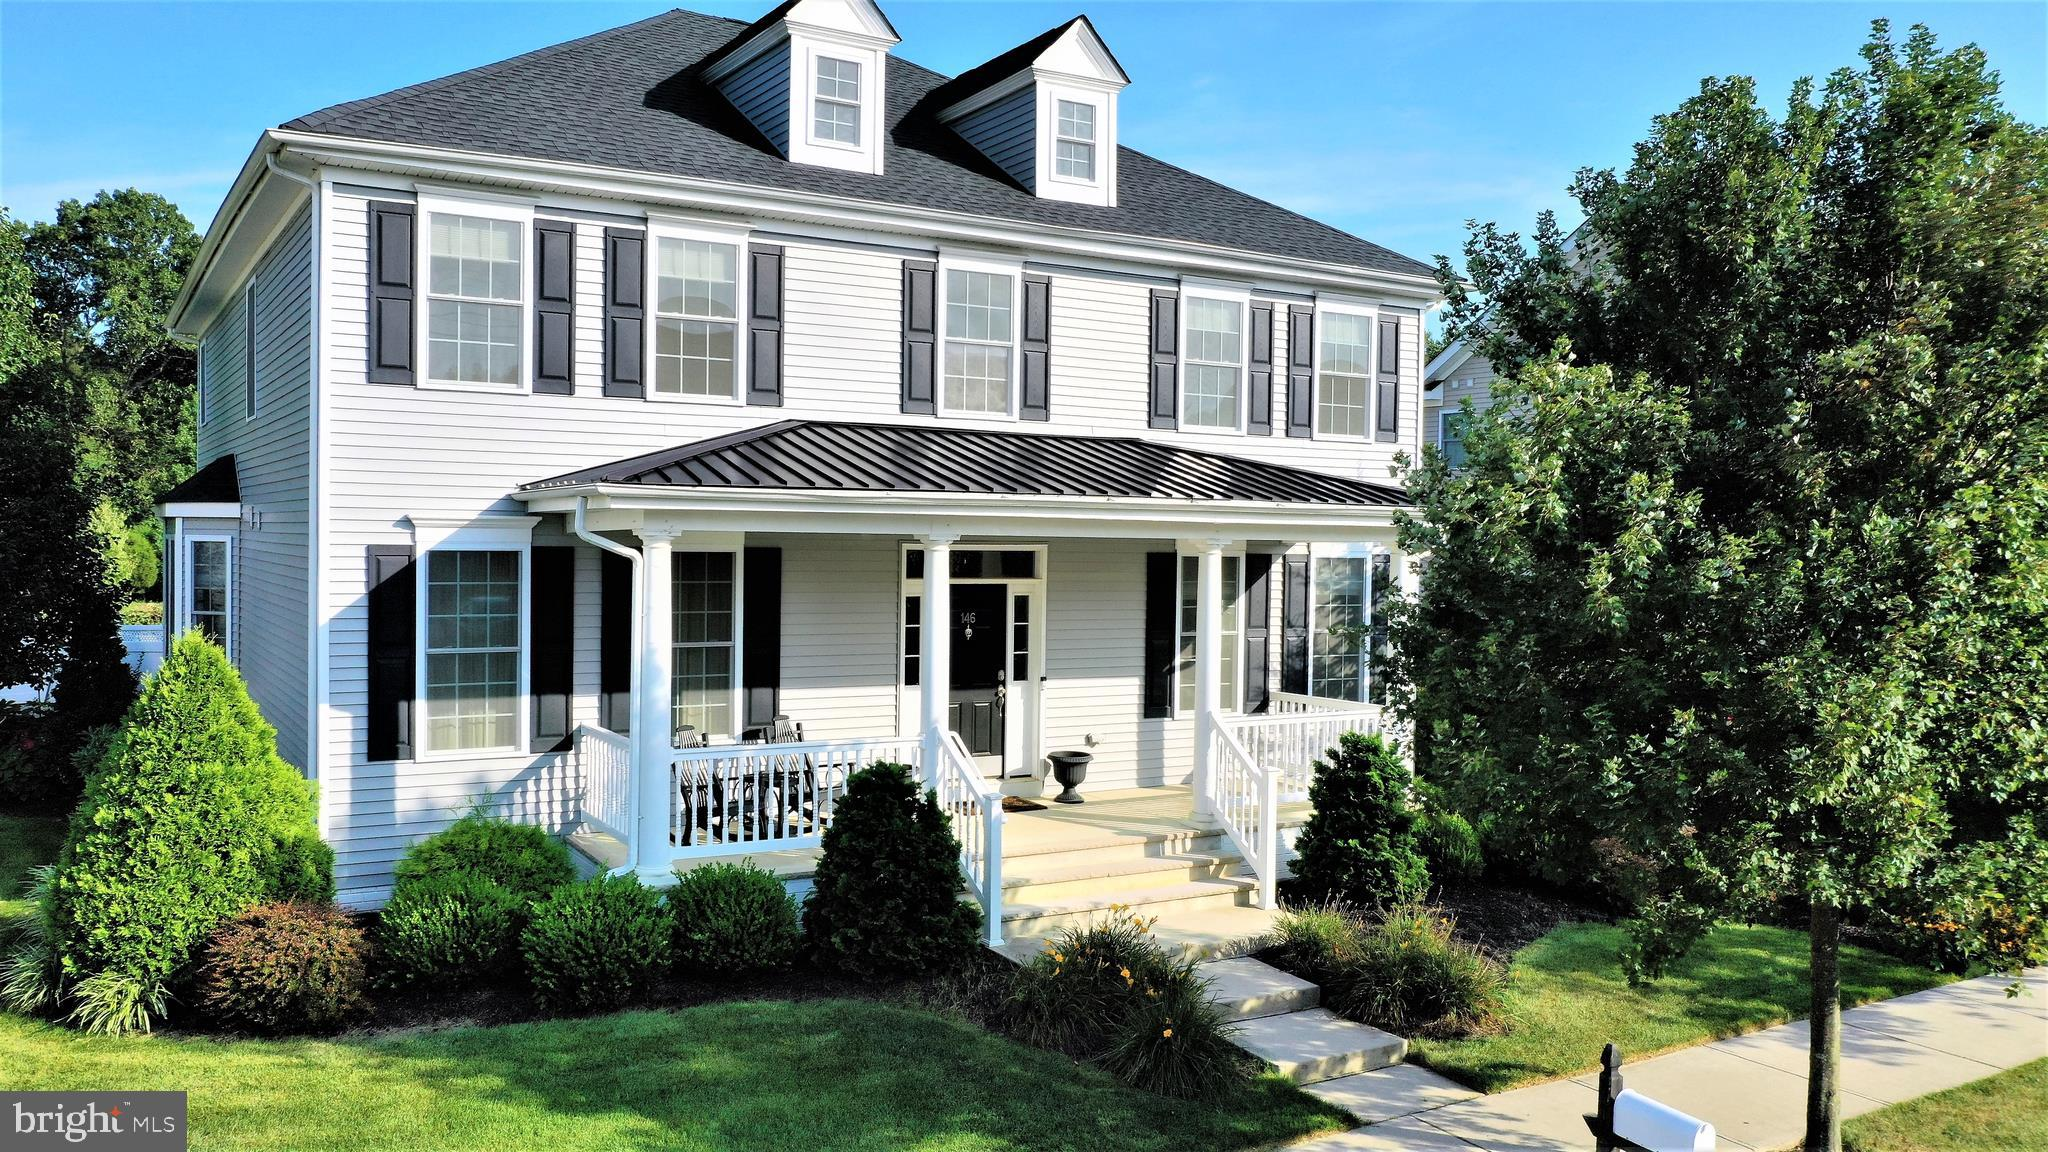 146 PRESERVATION BOULEVARD, CHESTERFIELD, NJ 08515